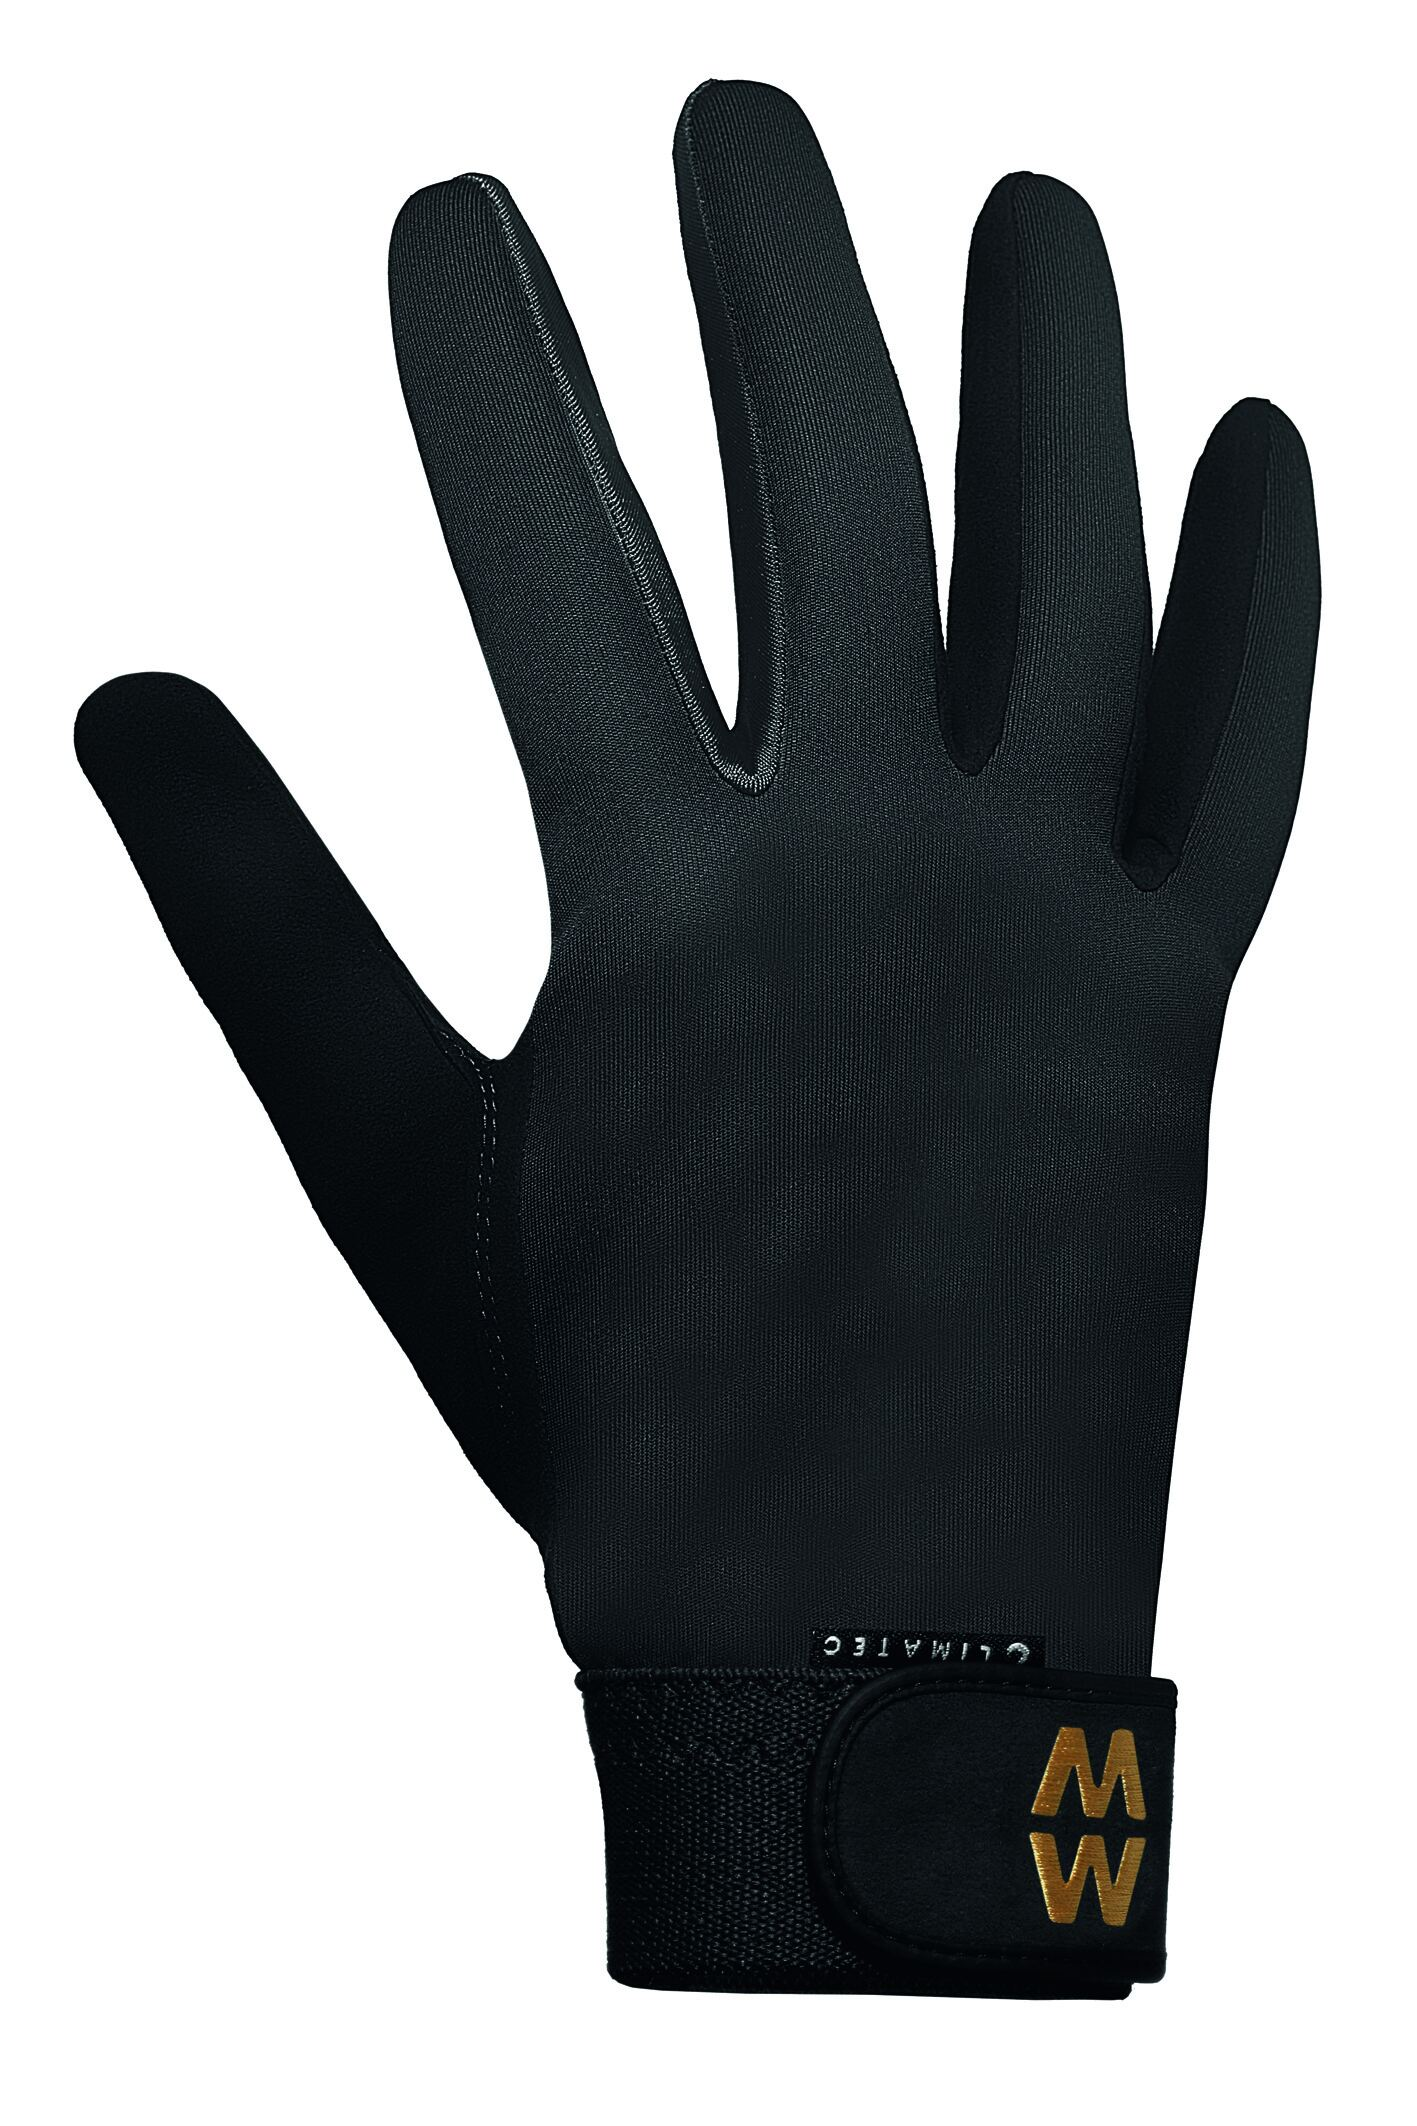 Image of 1 Pair Black MacWet Long Climatec Sports Gloves Unisex 7.5 Unisex - Macwet